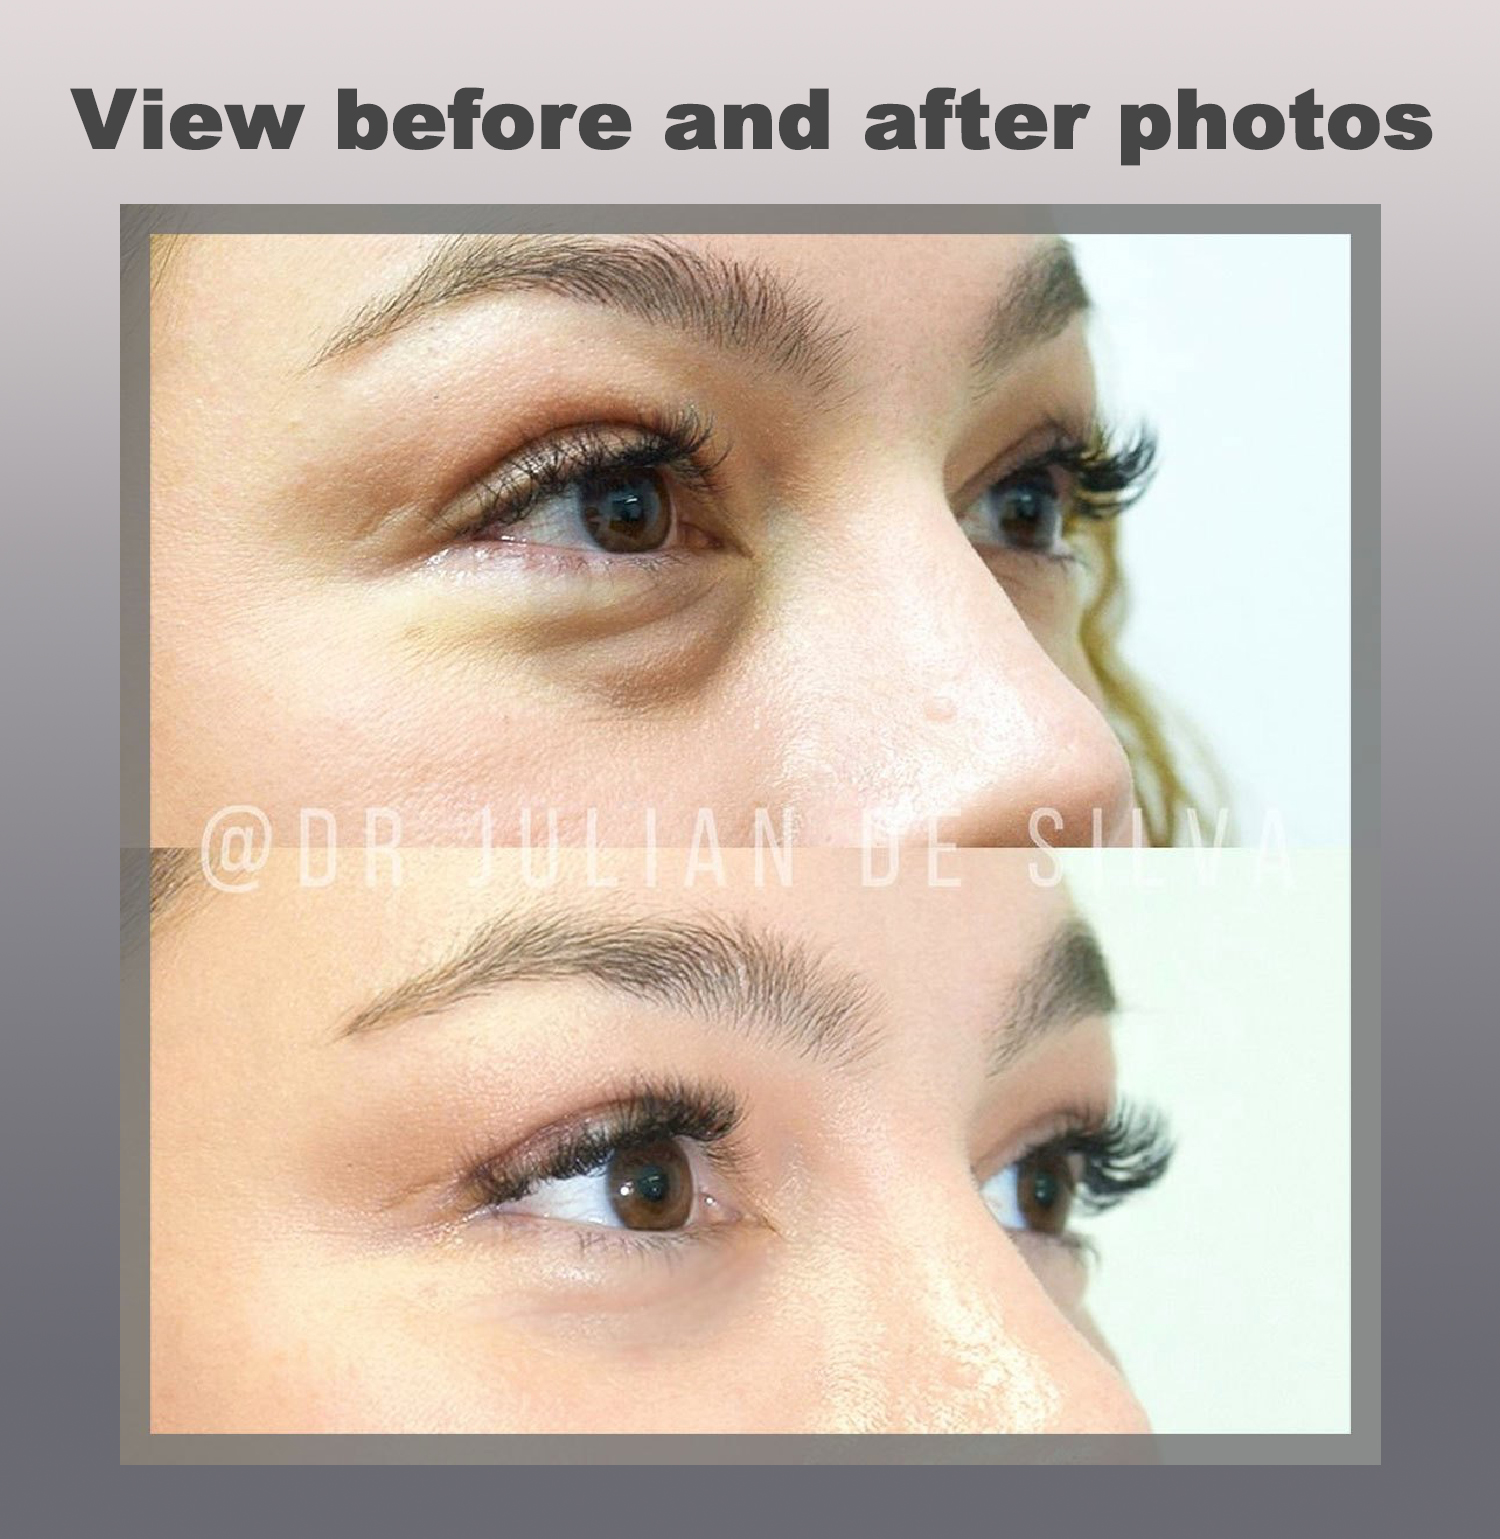 Blepharoplasty - View Before and After photos